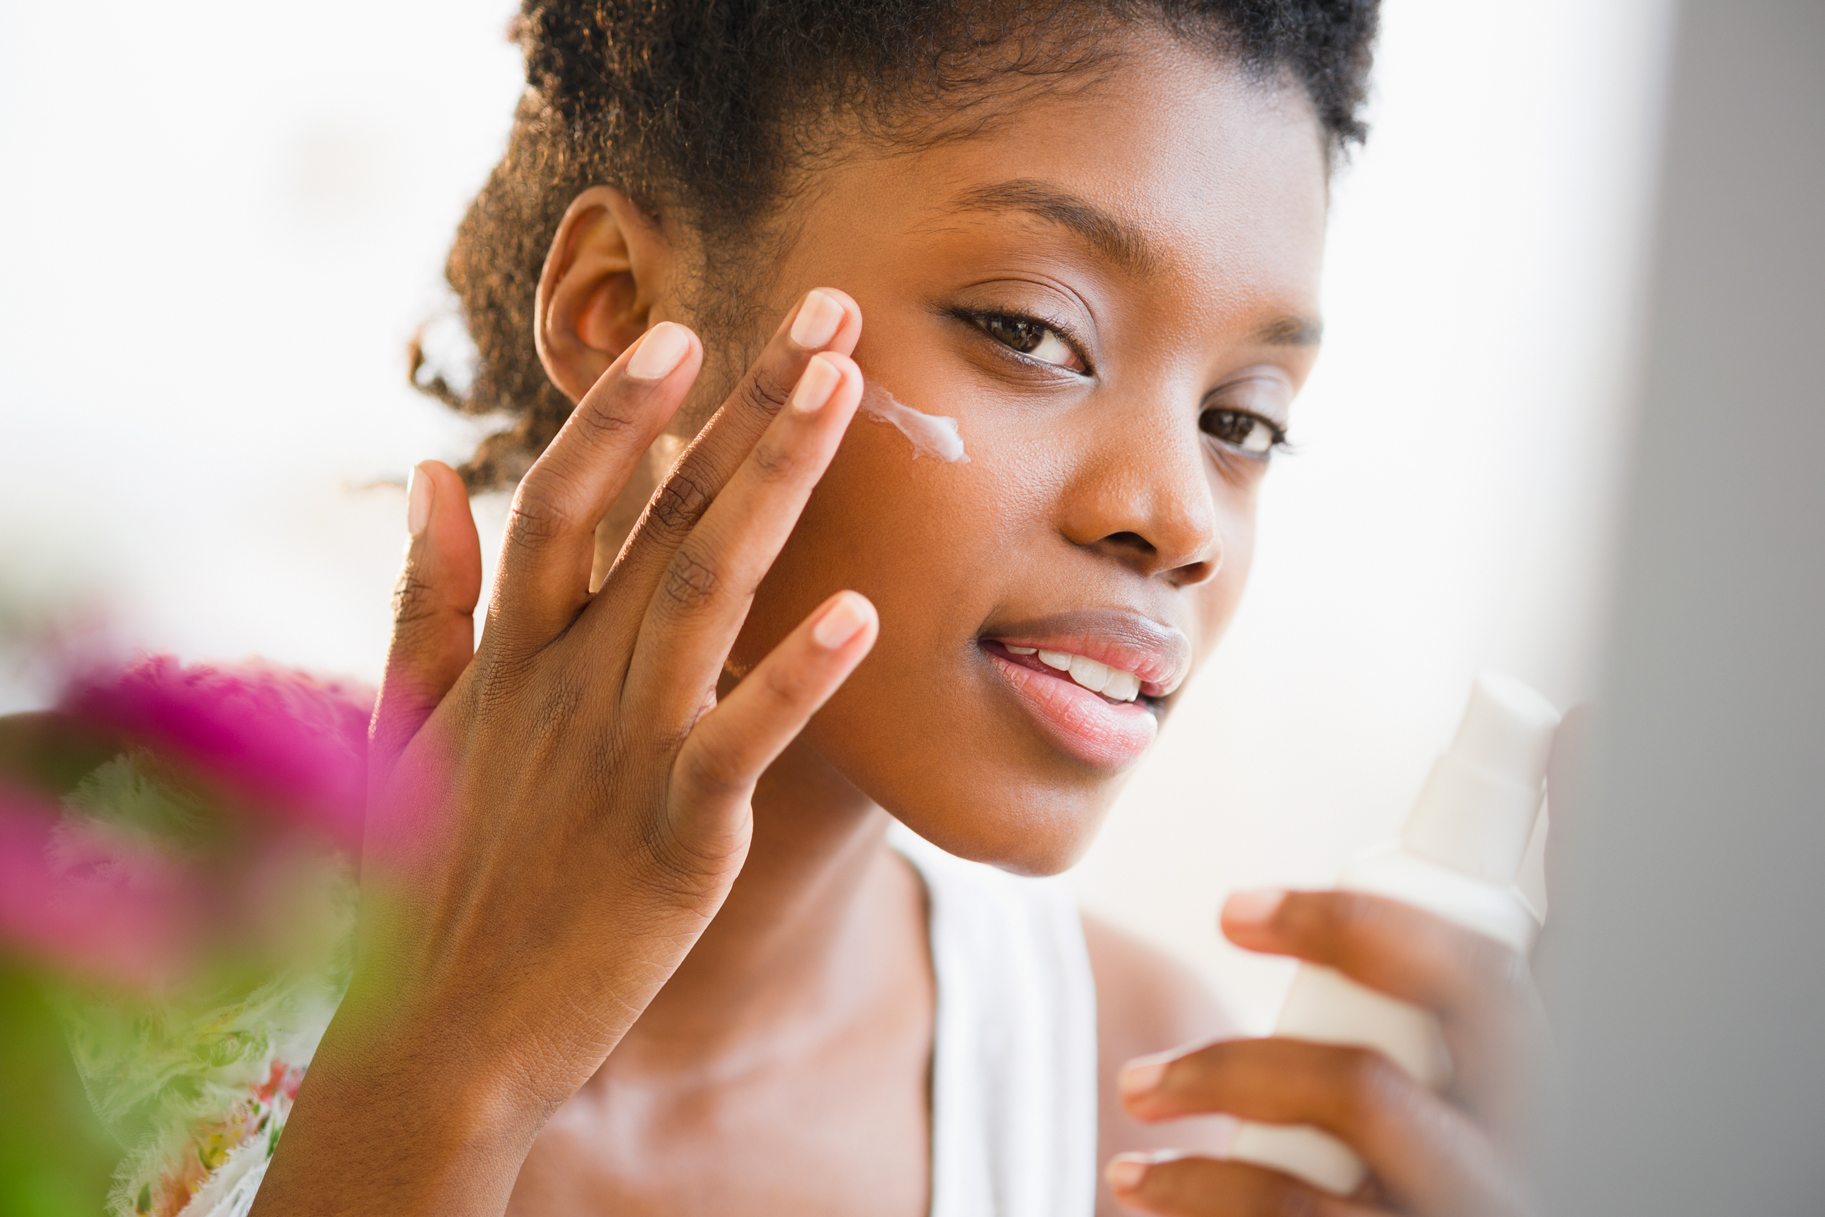 Best Dermatologist Recommended Moisturizers for Dry Skin